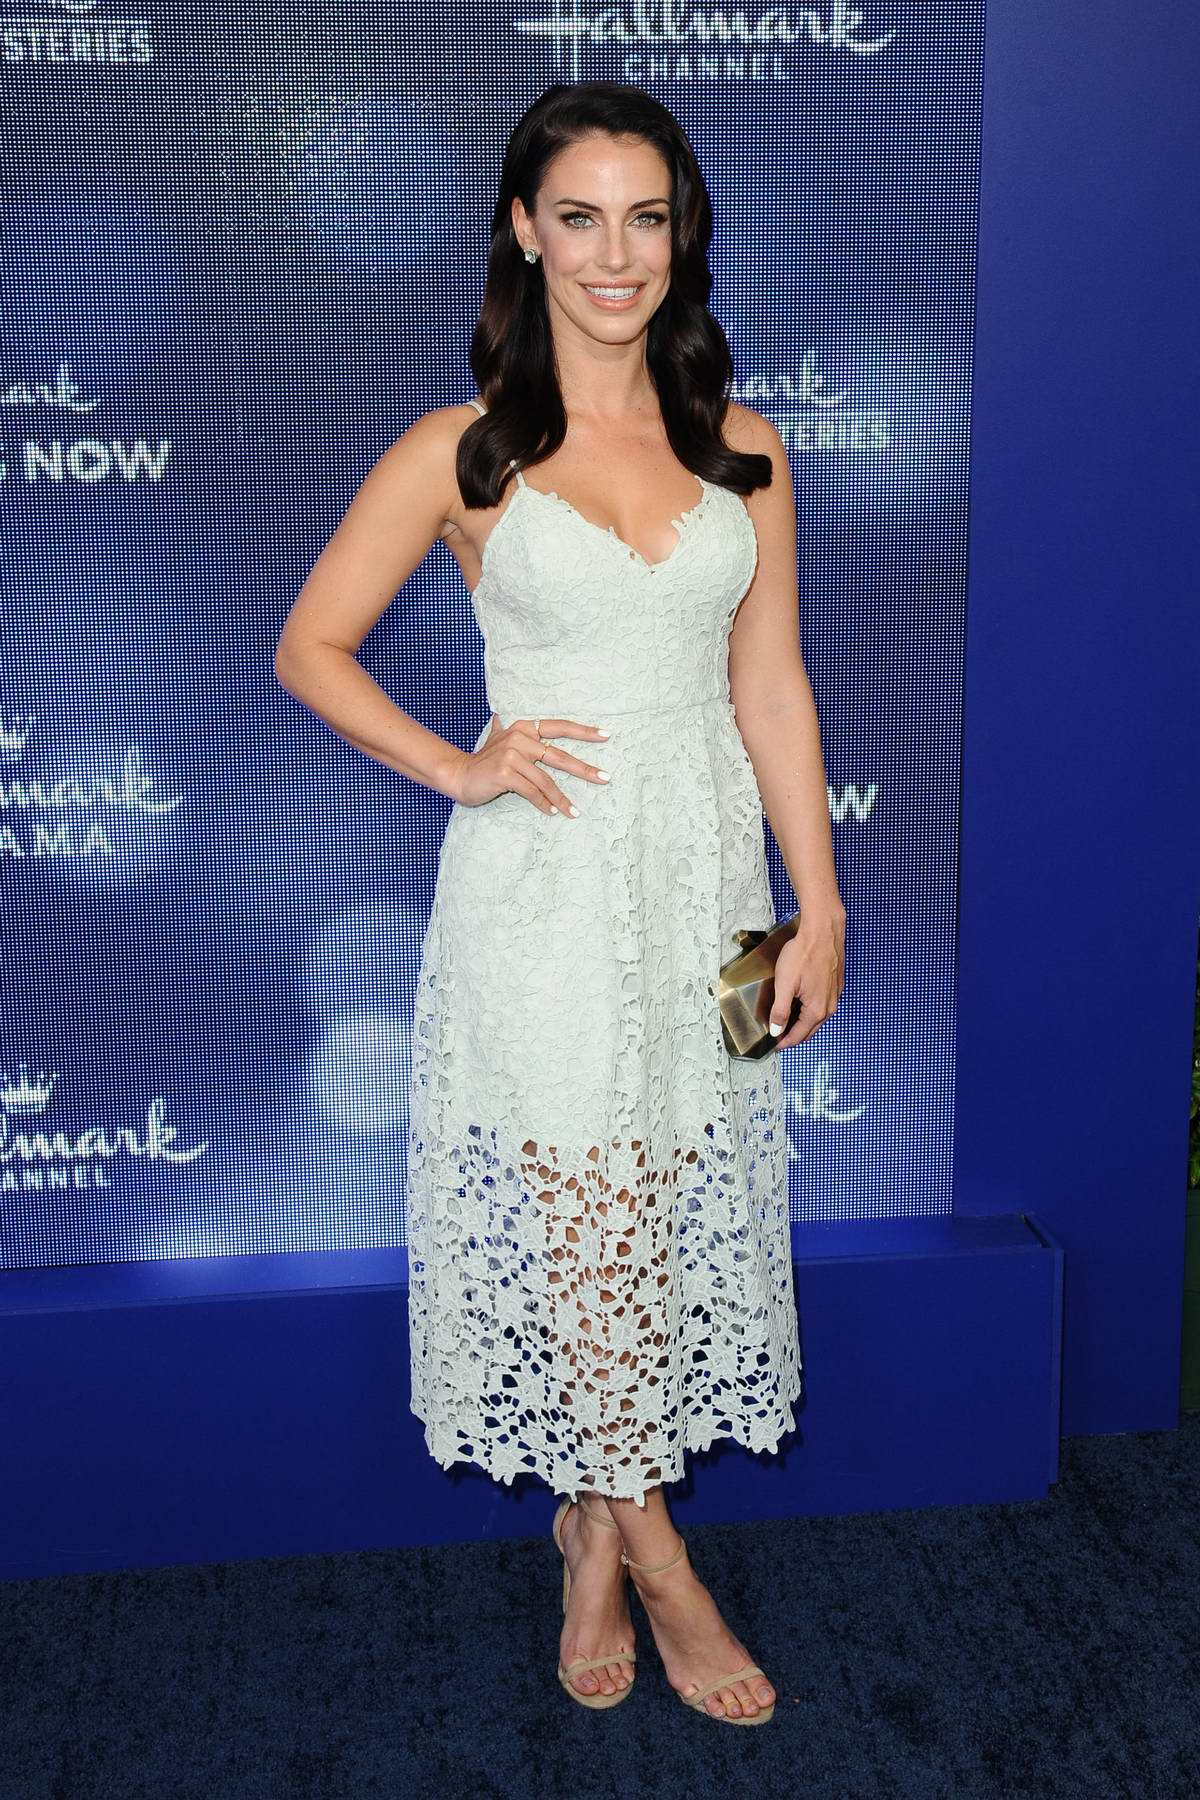 Jessica Lowndes attends Hallmark Movies & Mysteries Summer TCA Press Tour Event in Beverly Hills, Los Angeles